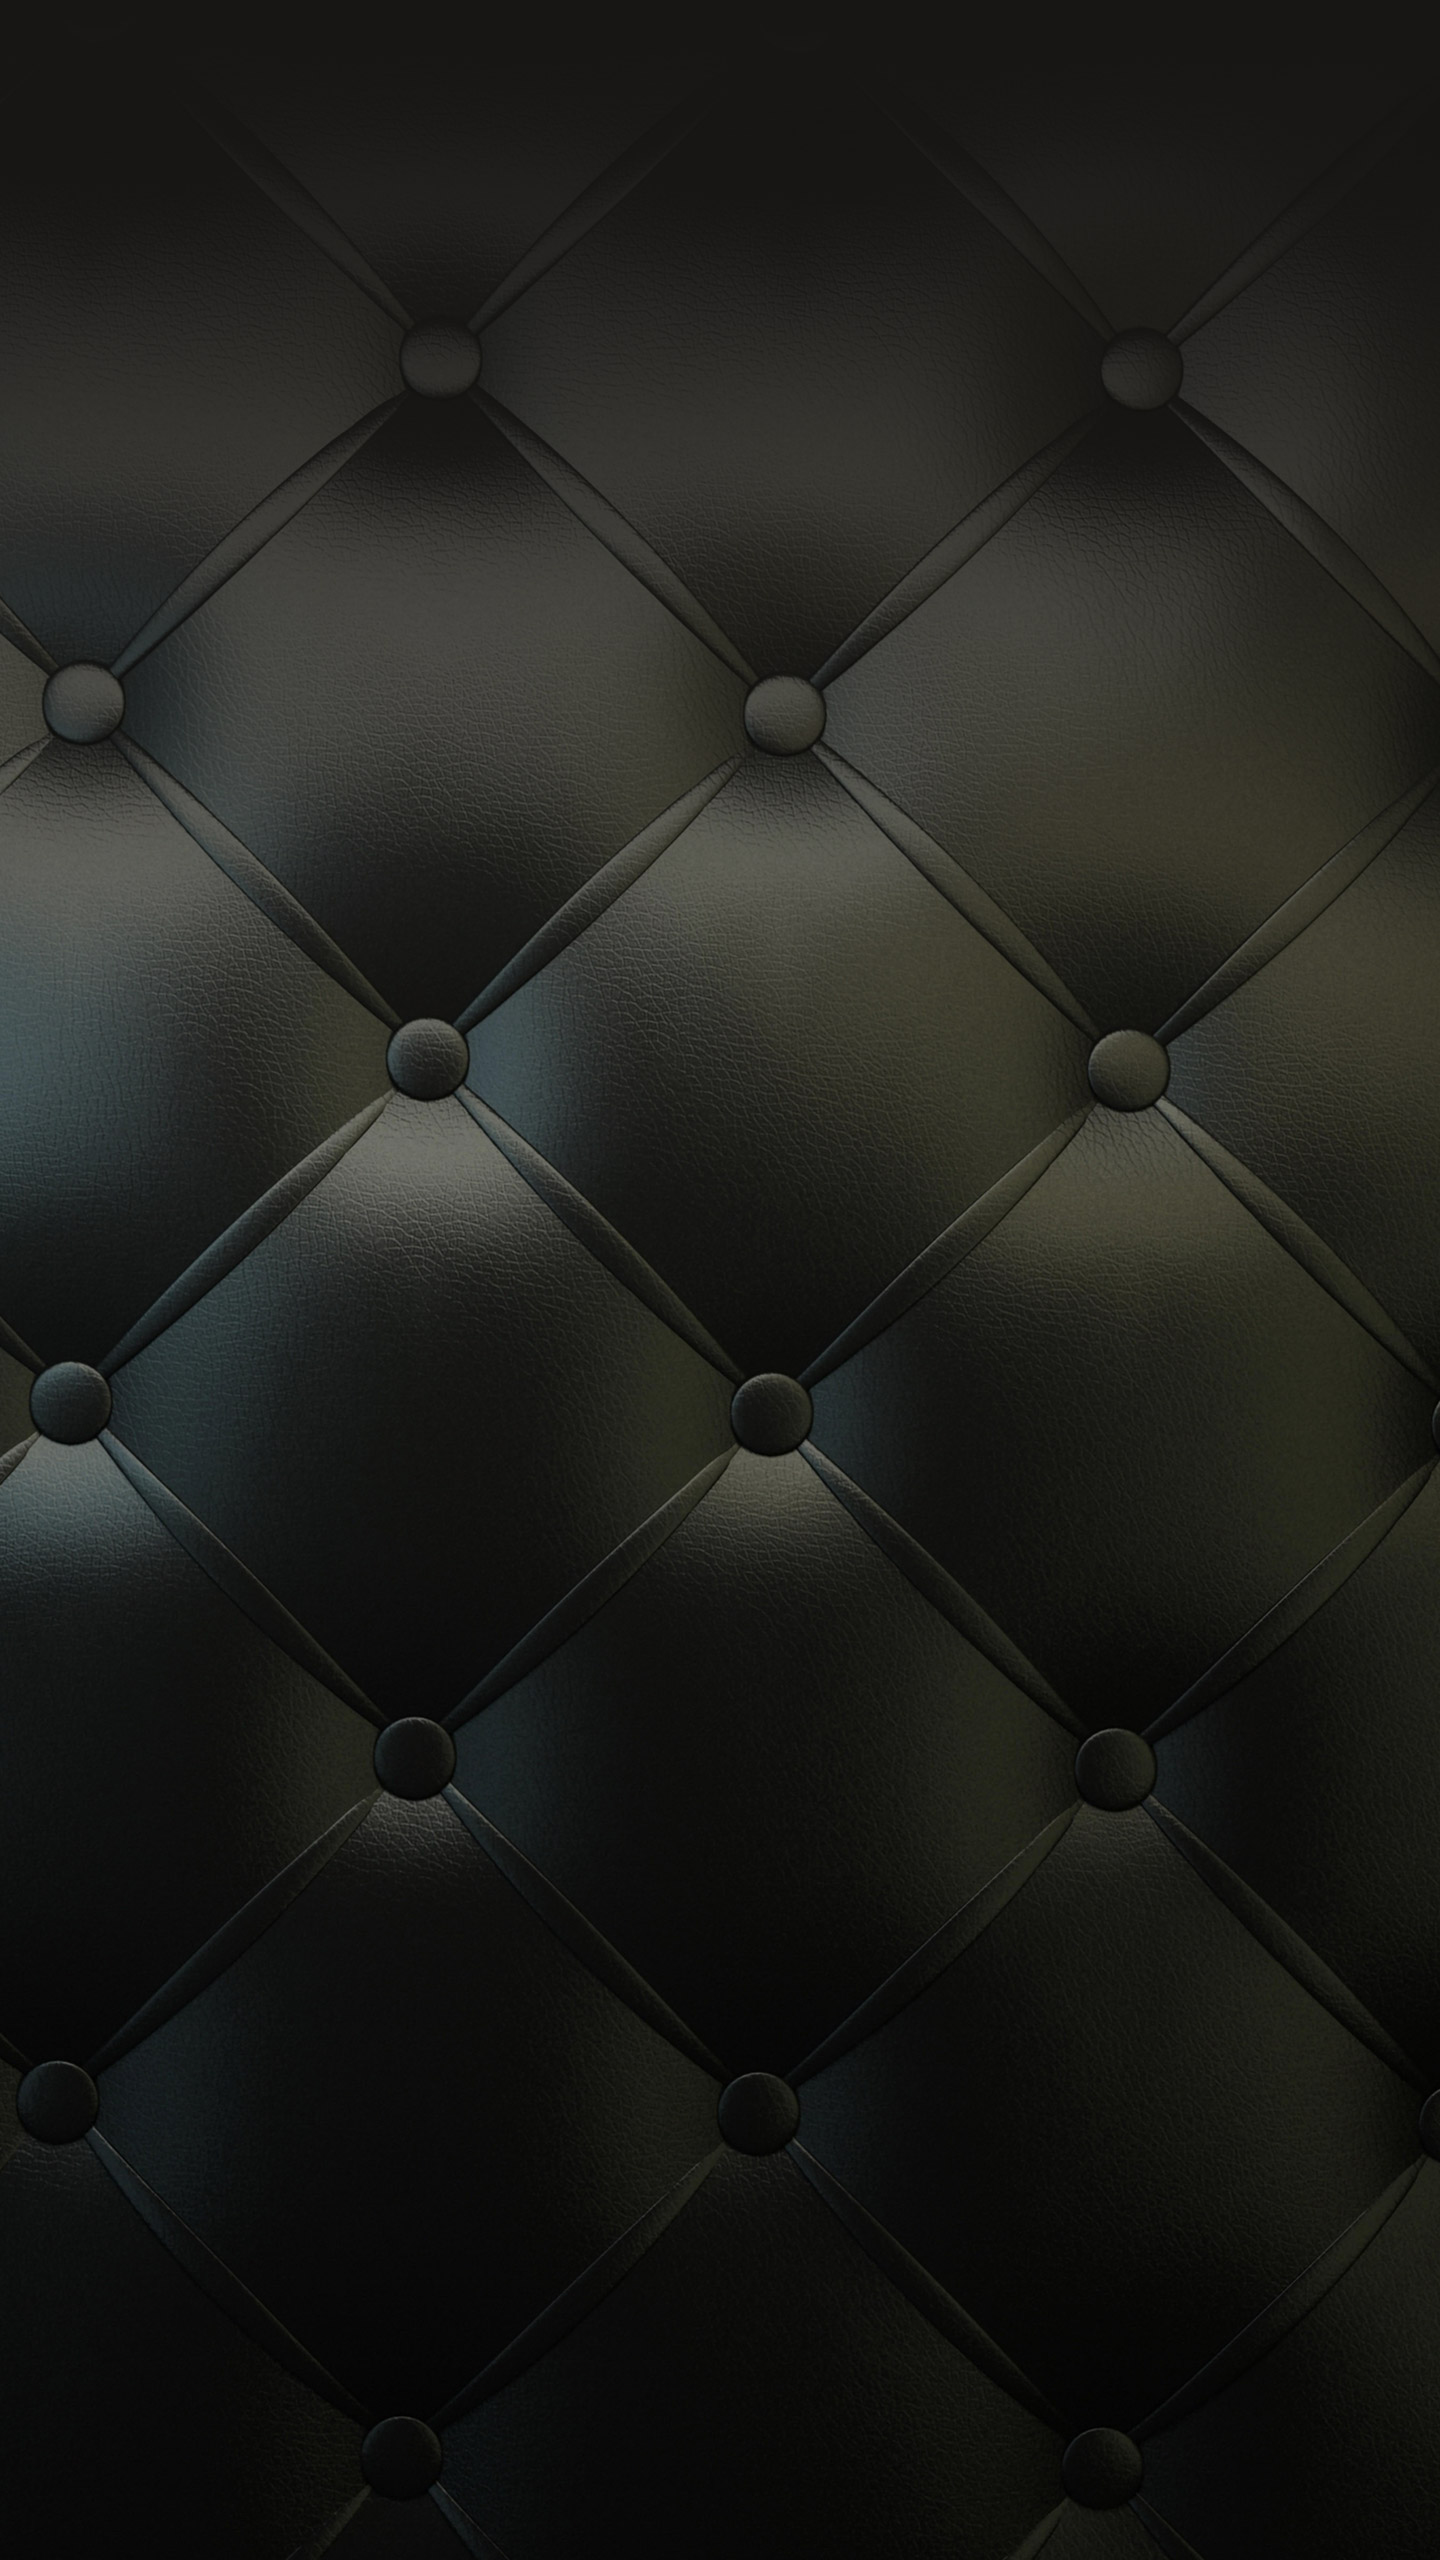 dark leather wallpaper #16